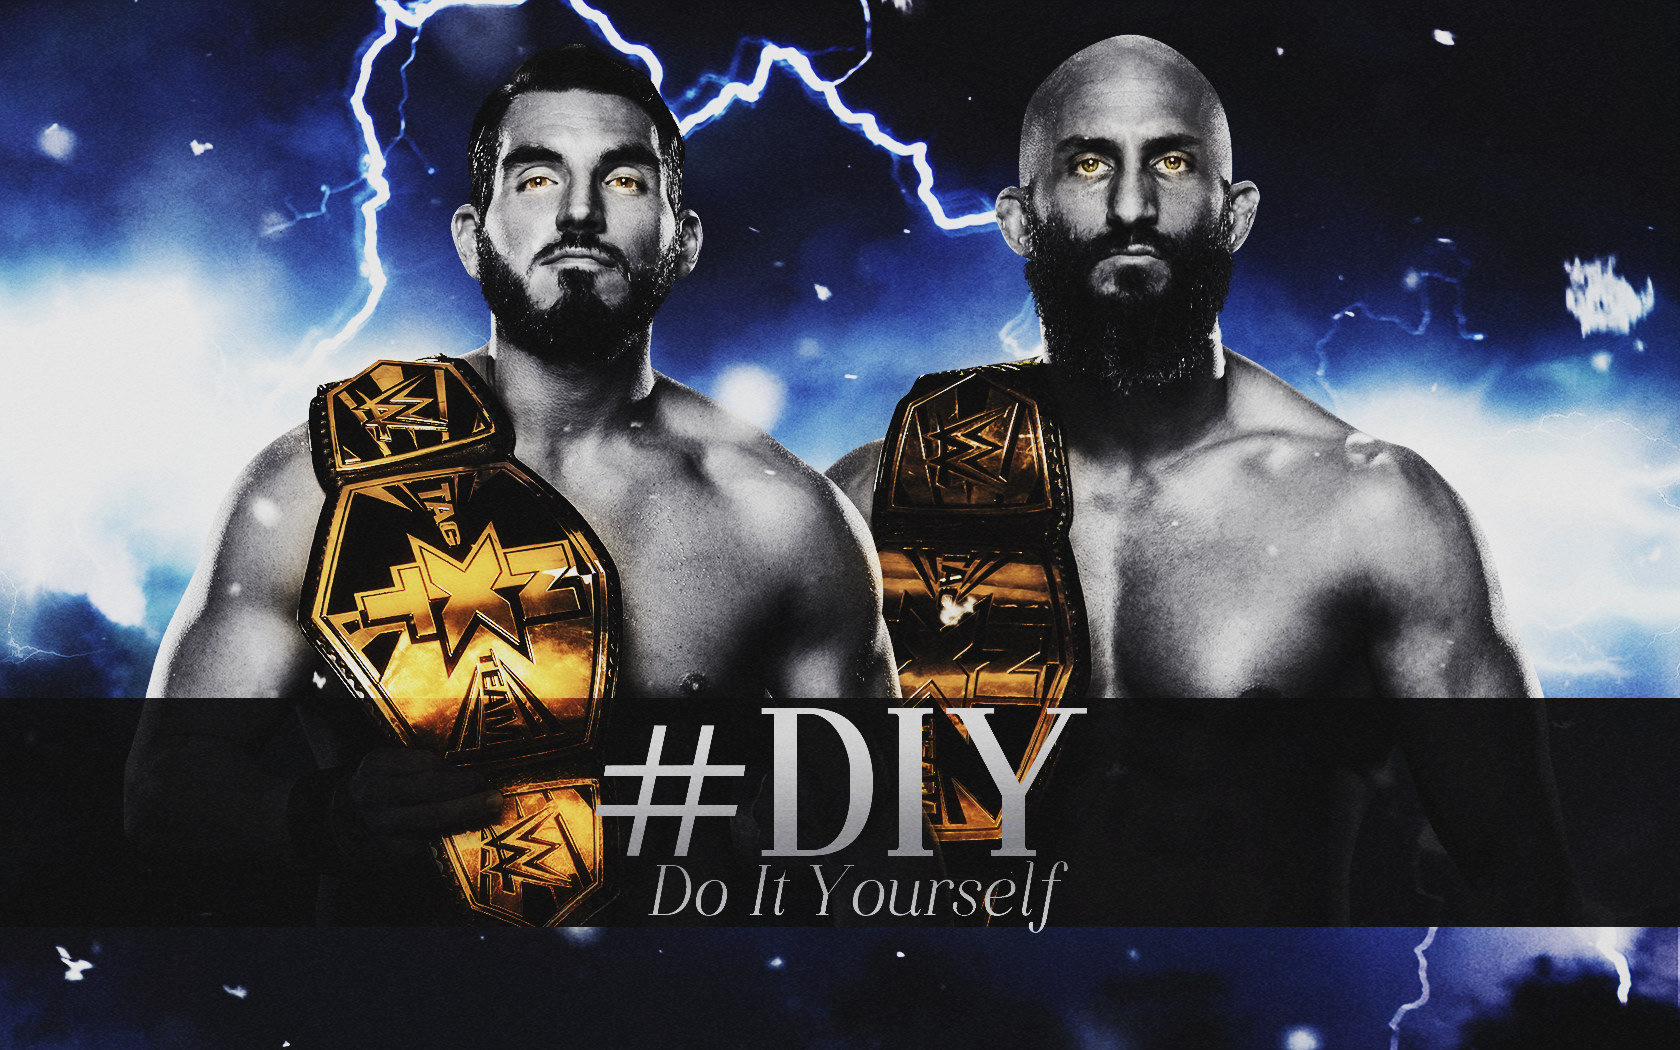 WWE #DIY Wallpaper 2017 By LastBreathGFX On DeviantArt